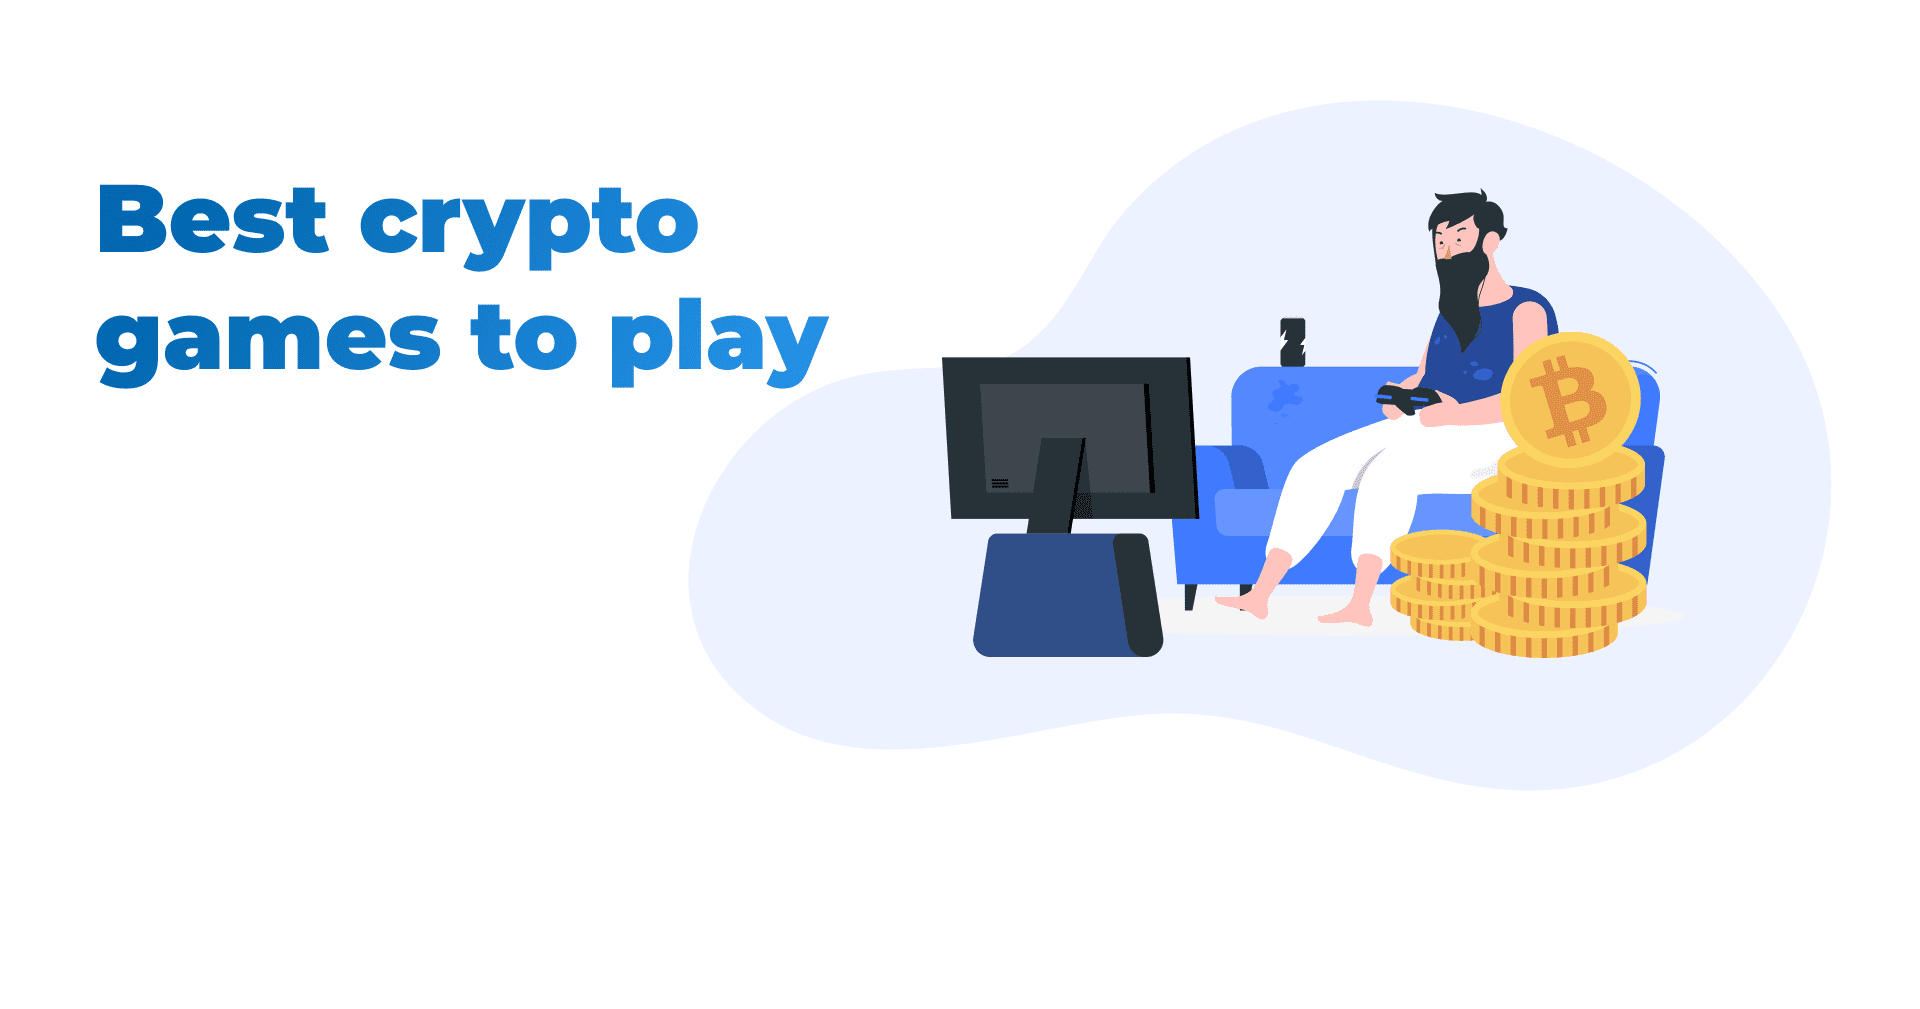 trastra, crypto games, crypto, cryptocurrency, bitcoin, ethereum, buy ethereum, best games, blockchain